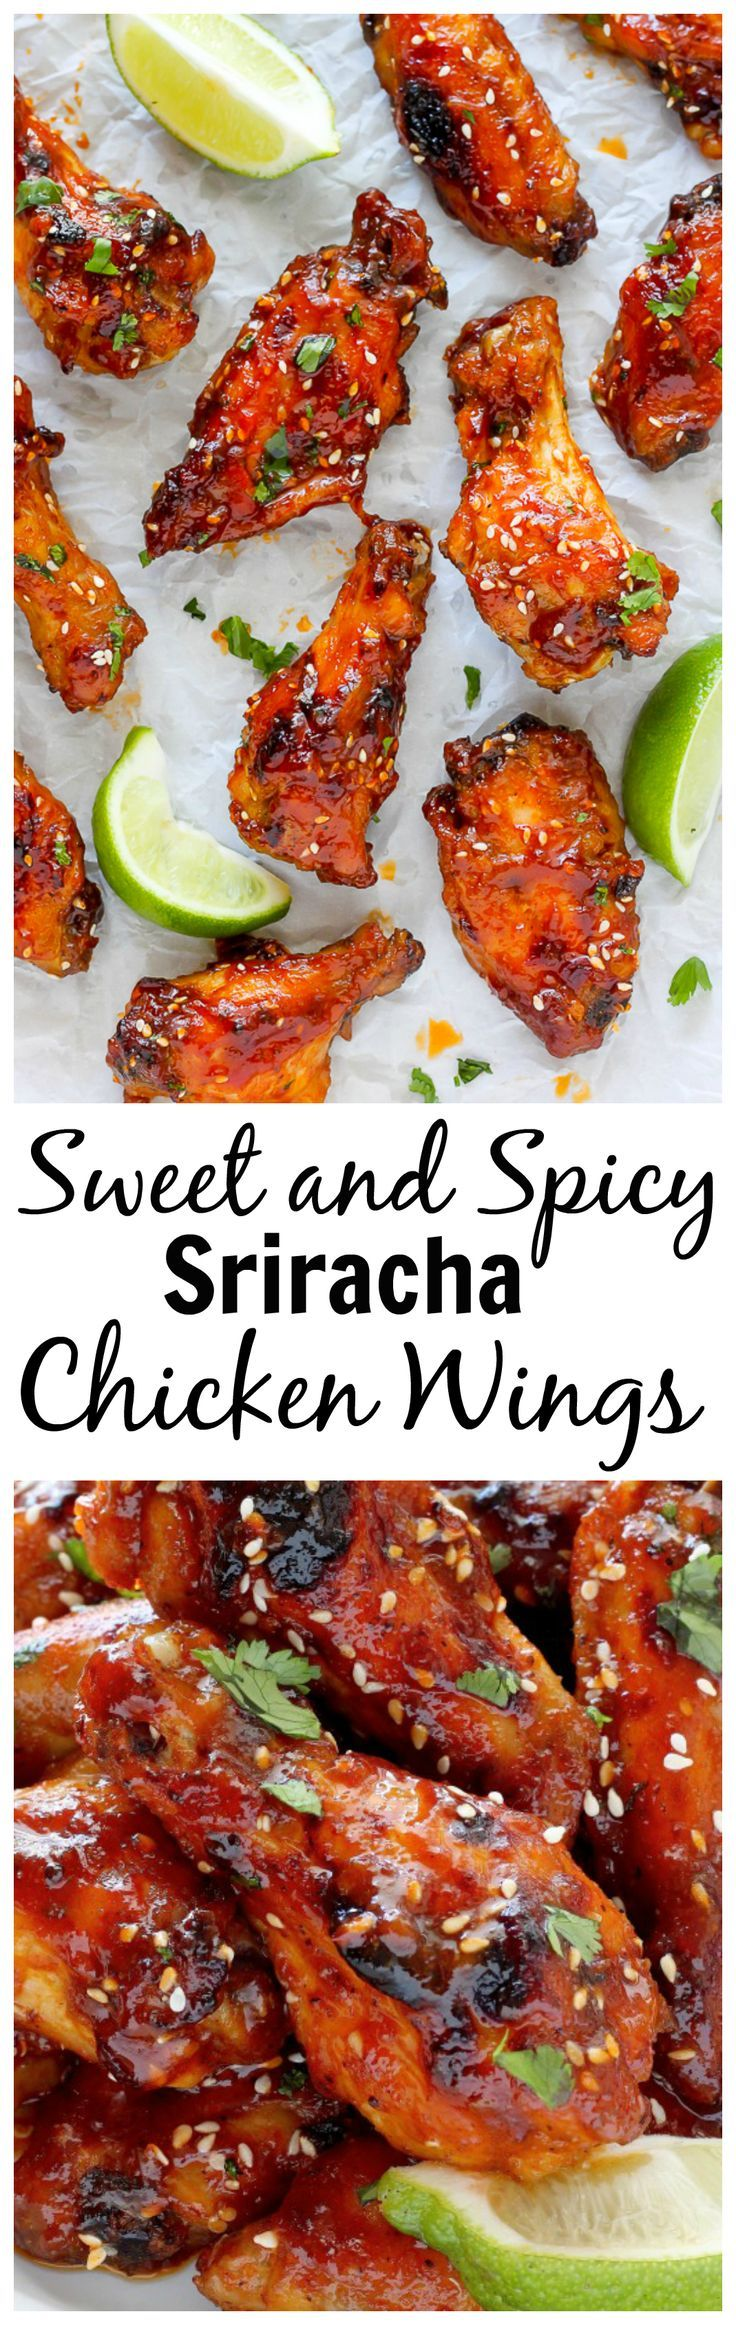 Sweet and Spicy Sriracha Baked Chicken Wings - these are seriously amazing!